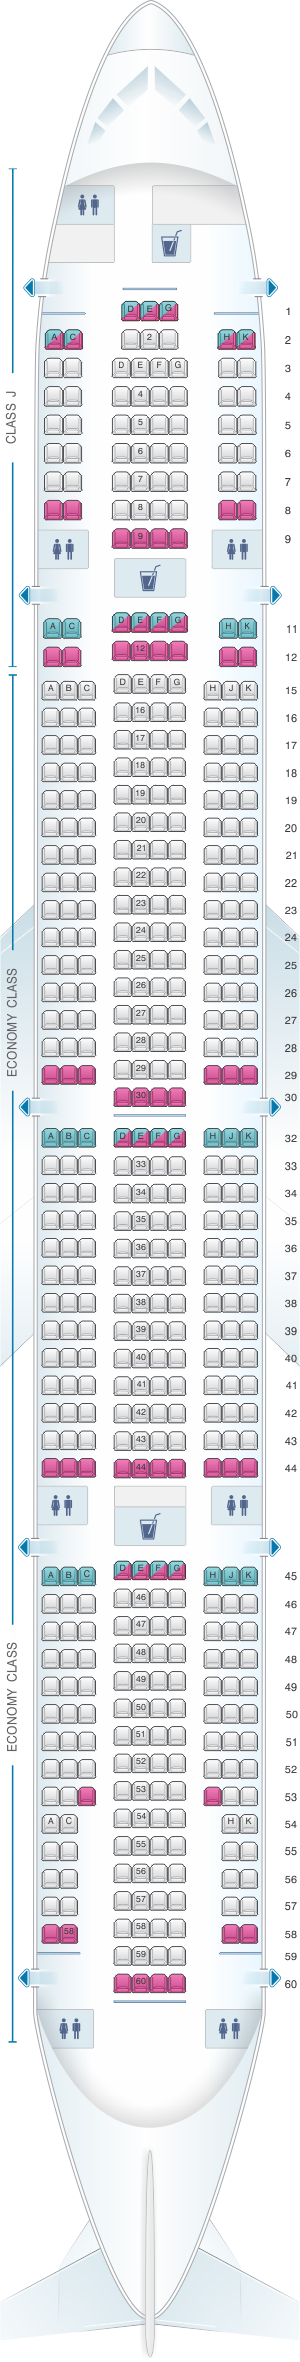 Seat map for Japan Airlines (JAL) Boeing B777 300 W24